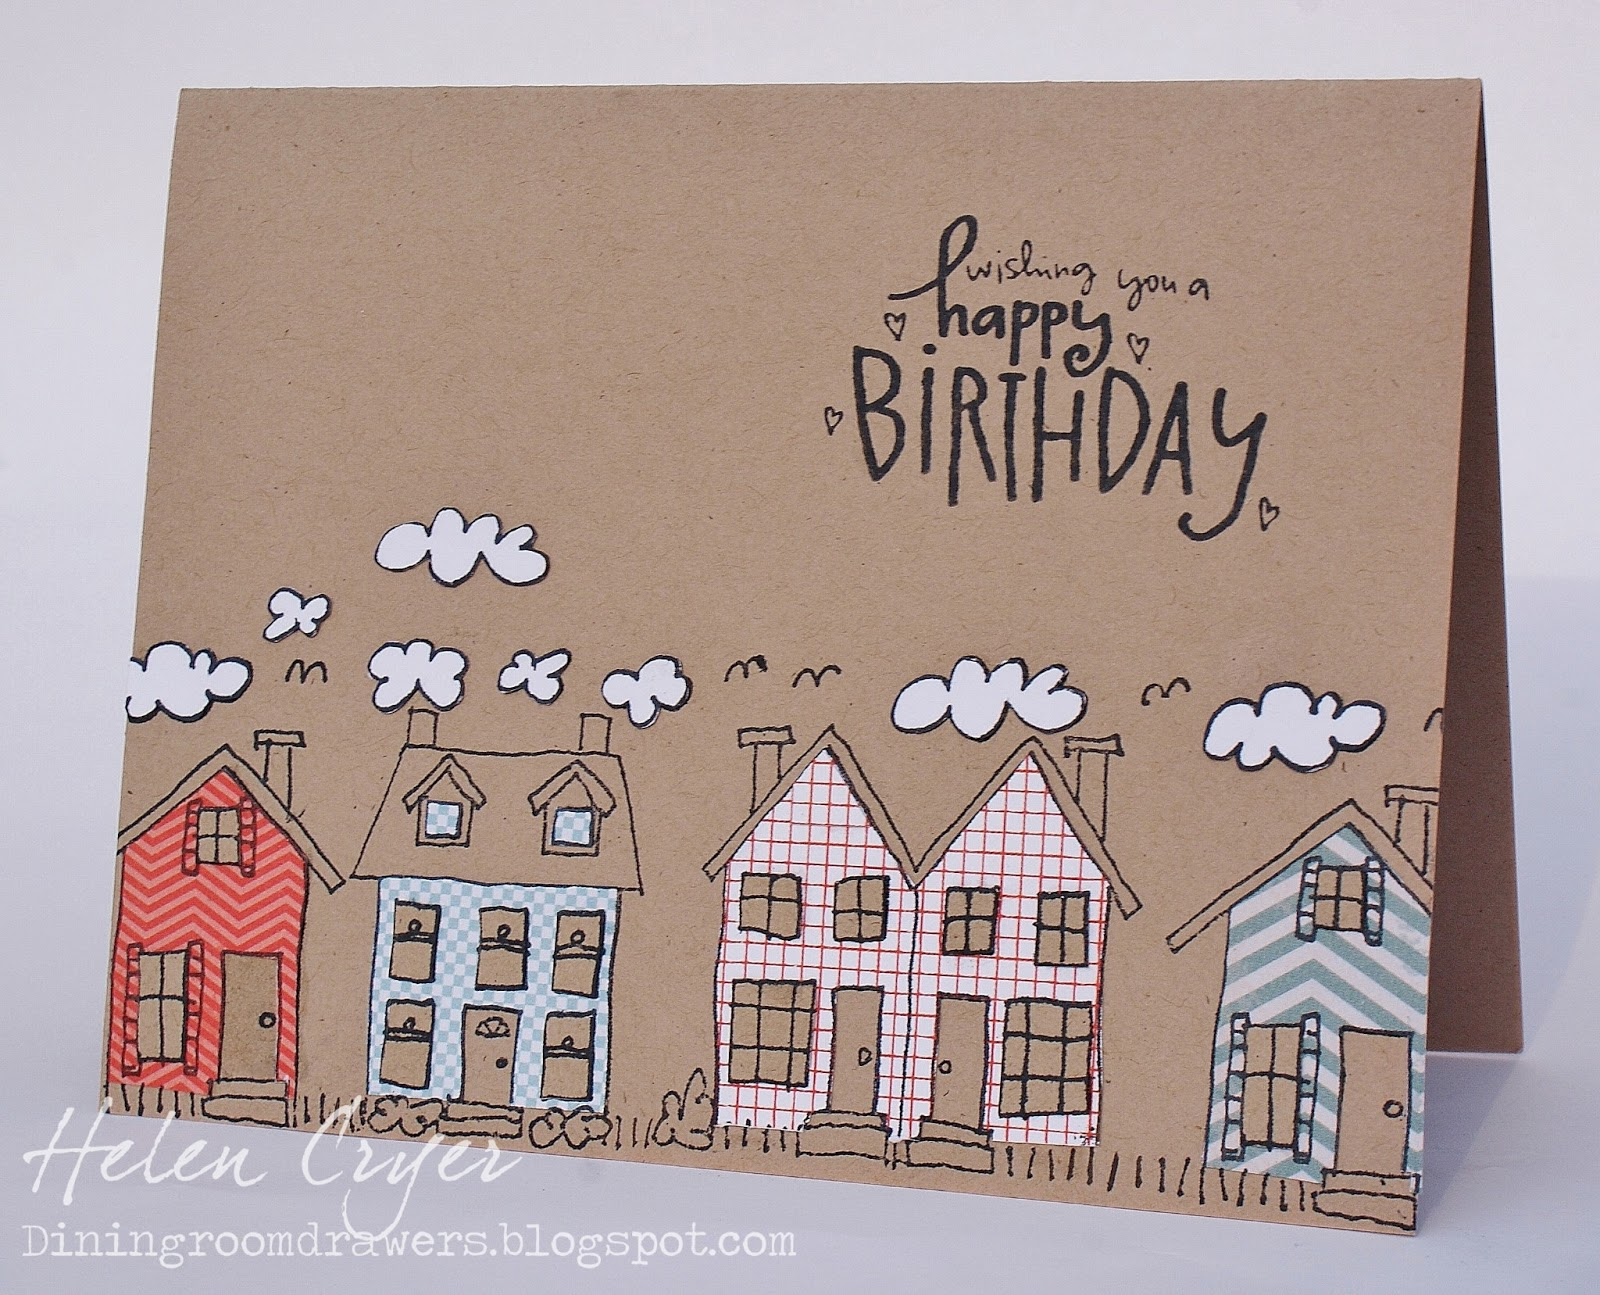 The Dining Room Drawers Stampin Up Birthday Card – Stampin Up Birthday Card